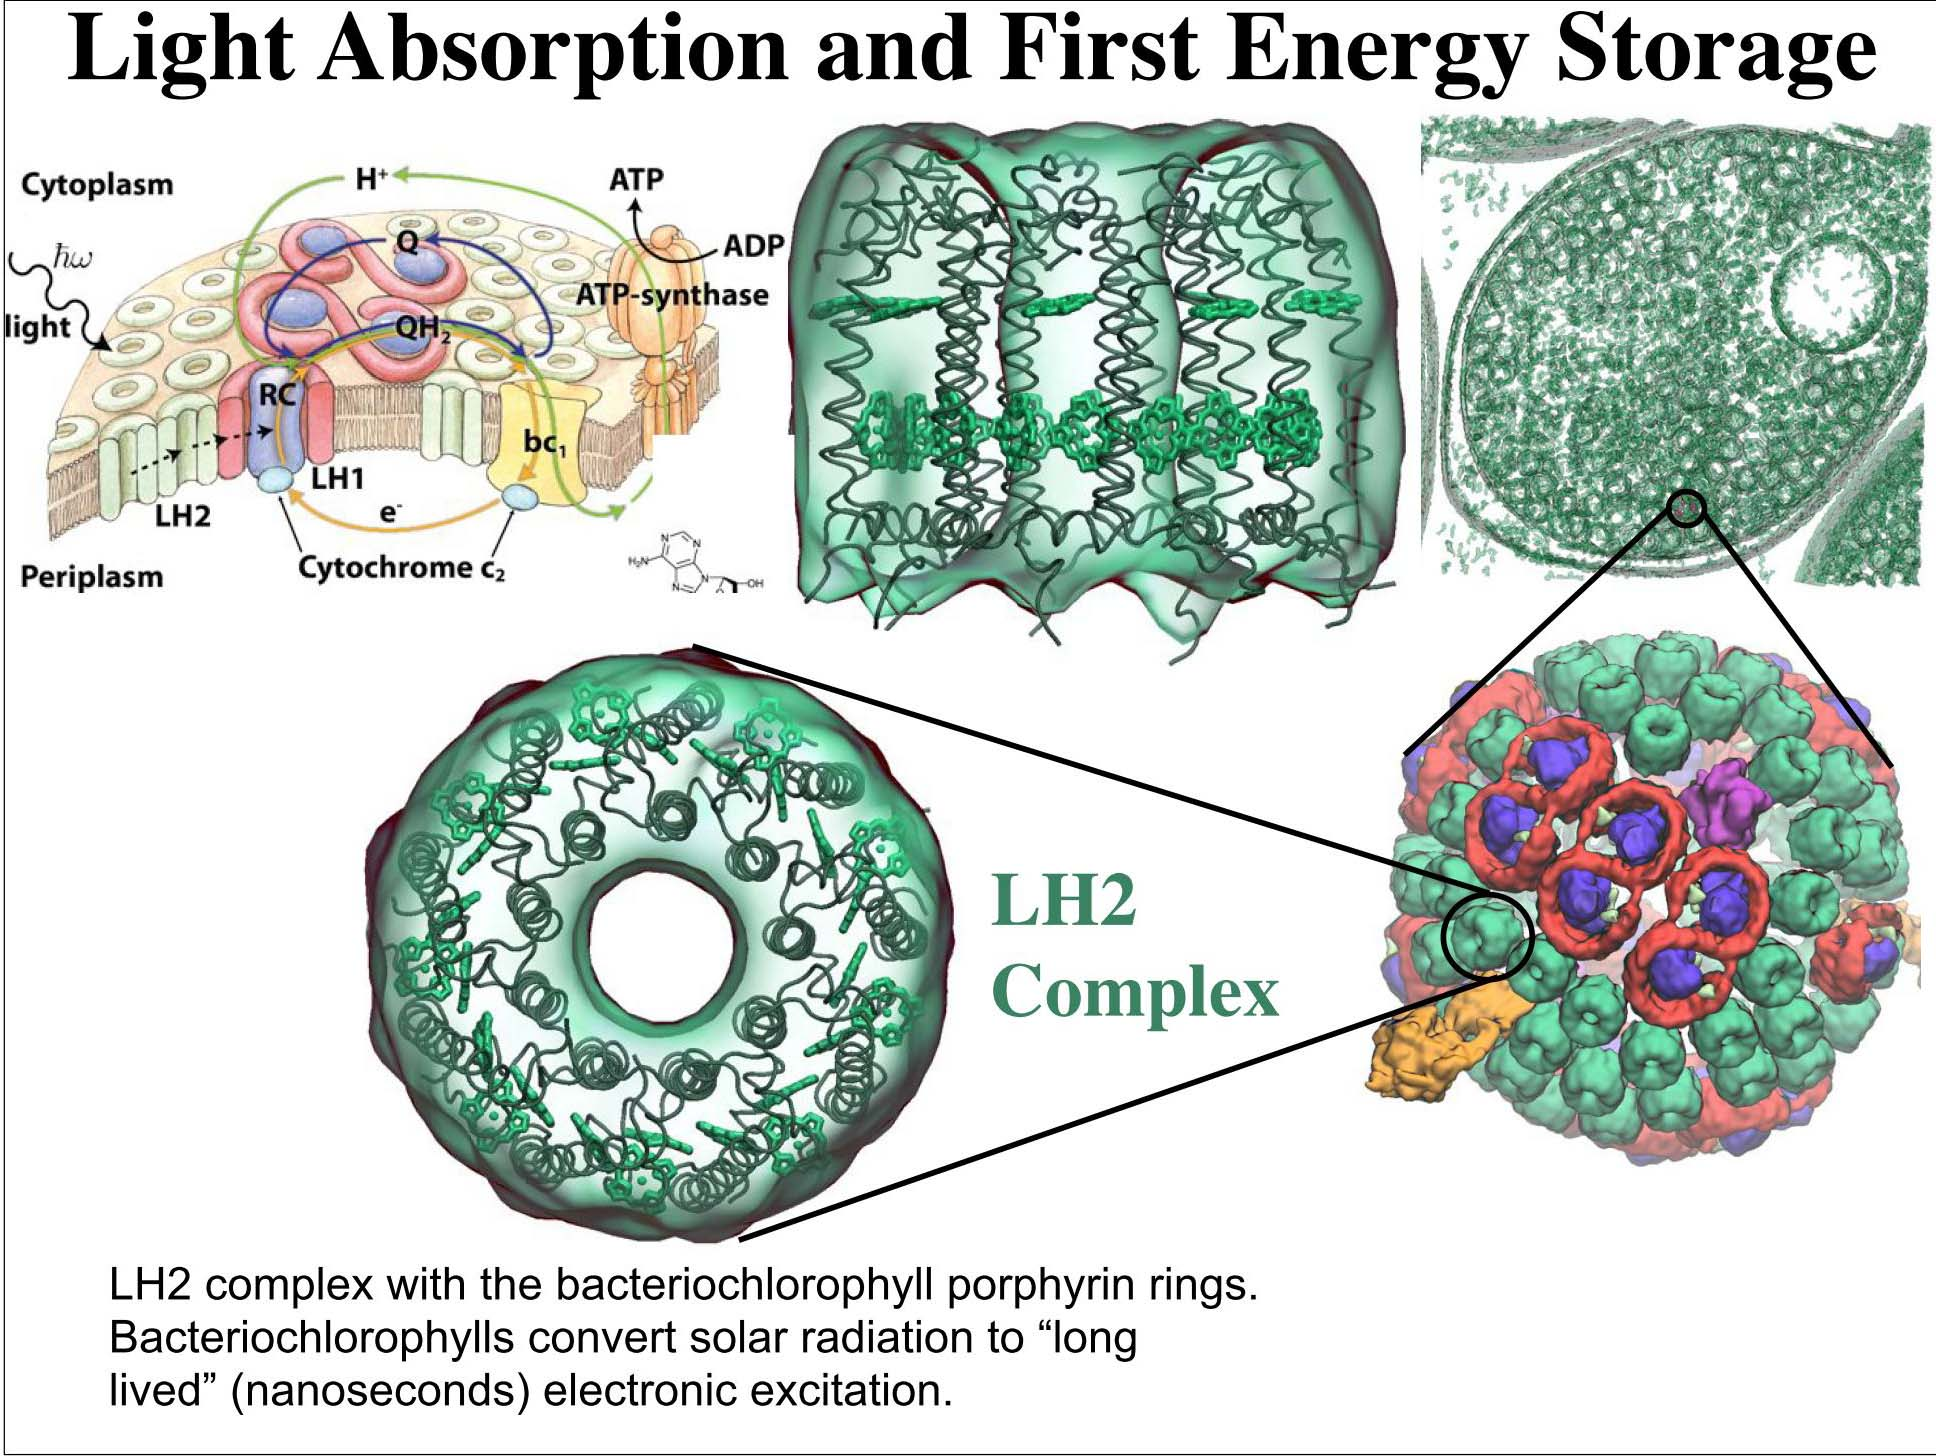 Light Absorption and First Energy Storage